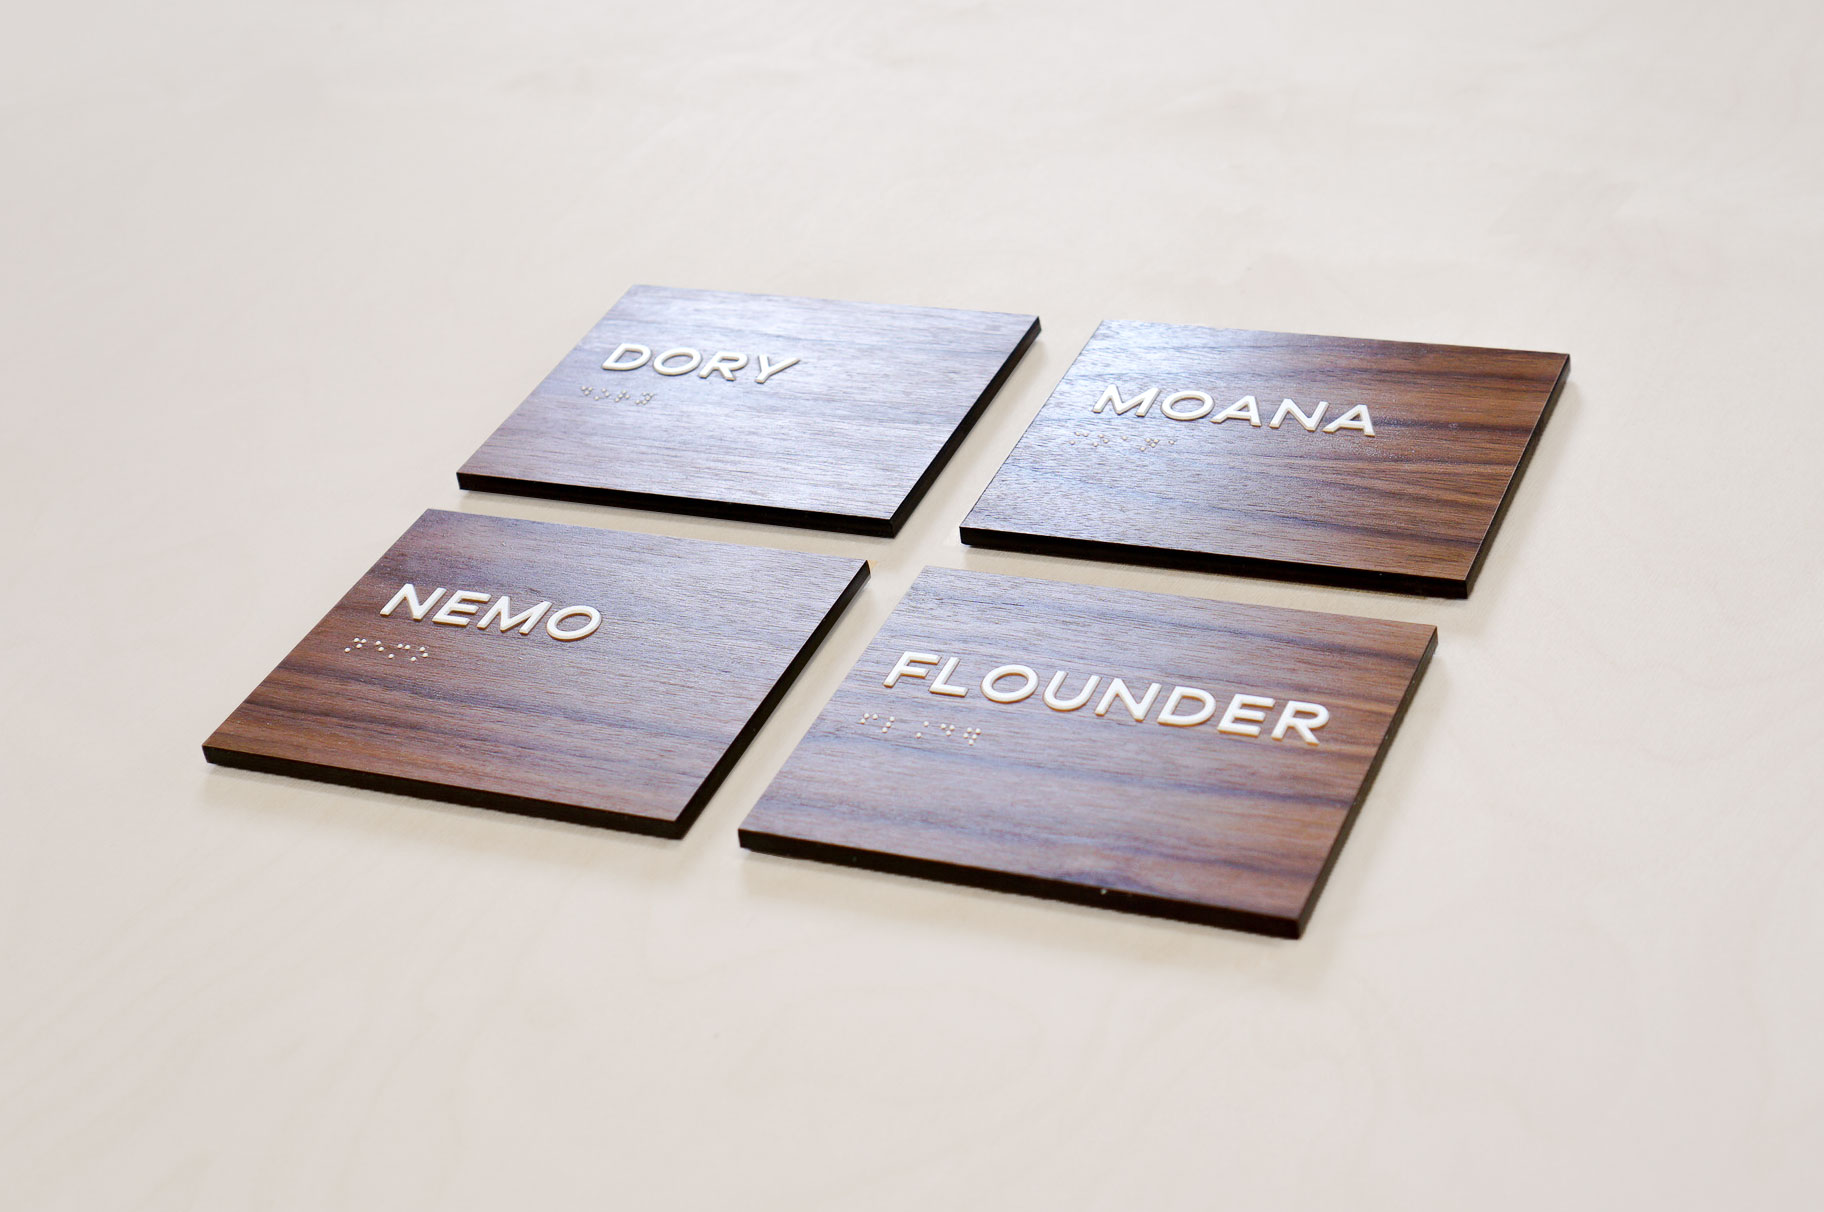 Luxe walnut wood ADA meeting/conference room signs for the office of Aquatic, a research and development company based in Chicago, IL.